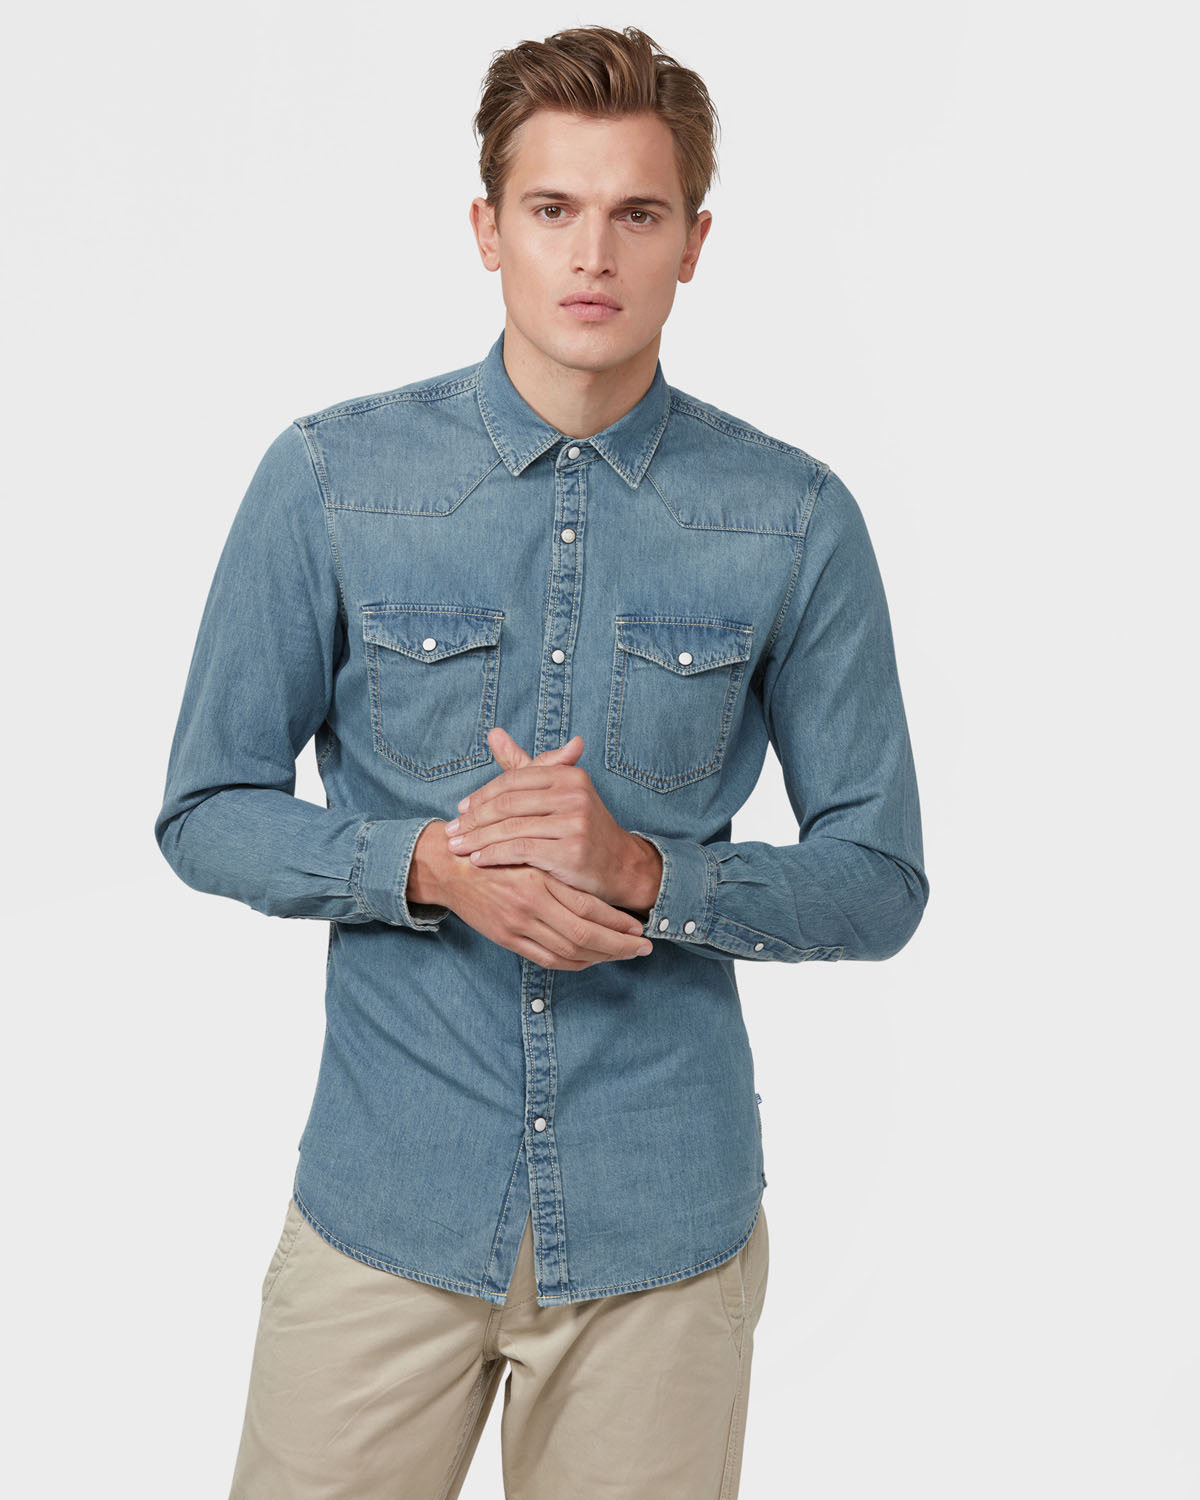 Denim Overhemd Heren.Heren Slim Fit Denim Overhemd 79136037 We Fashion